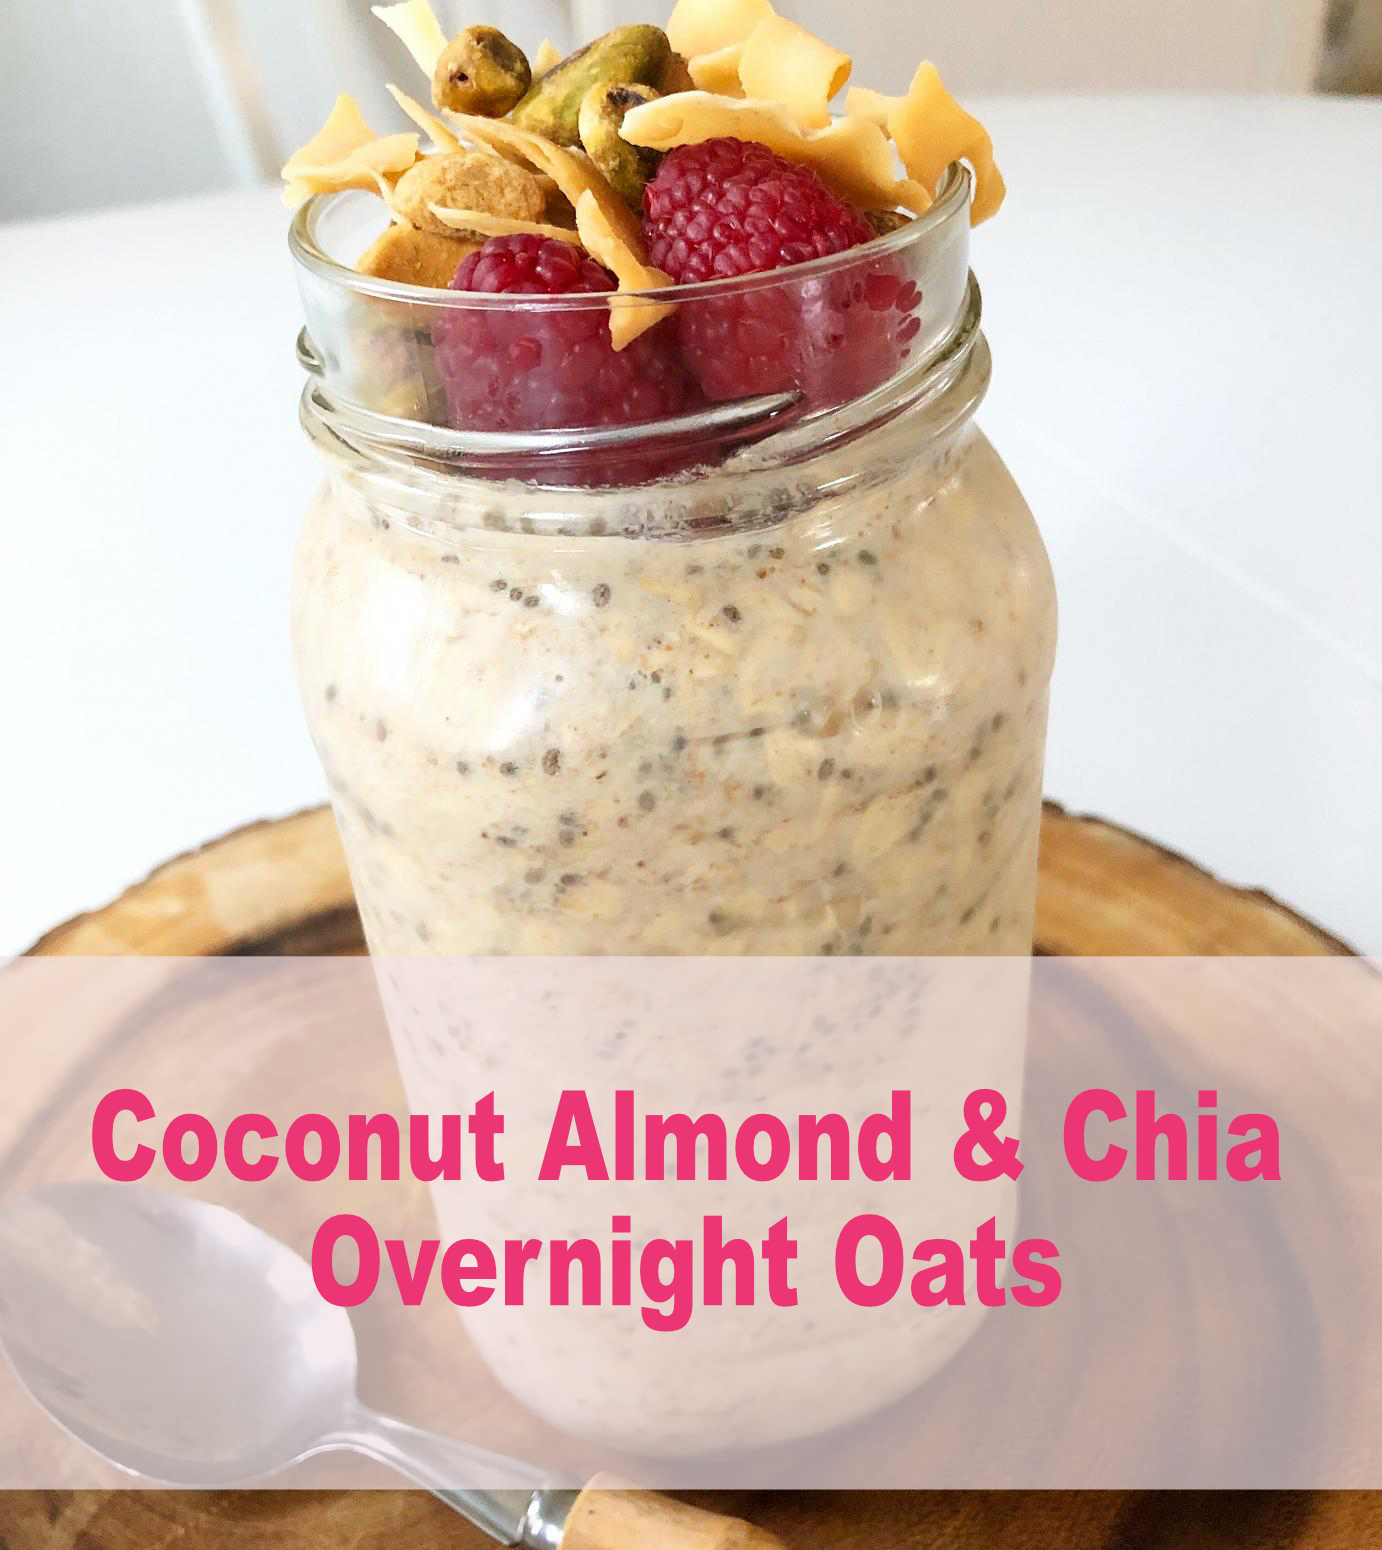 Coconut Almond & Chia Overnight oats